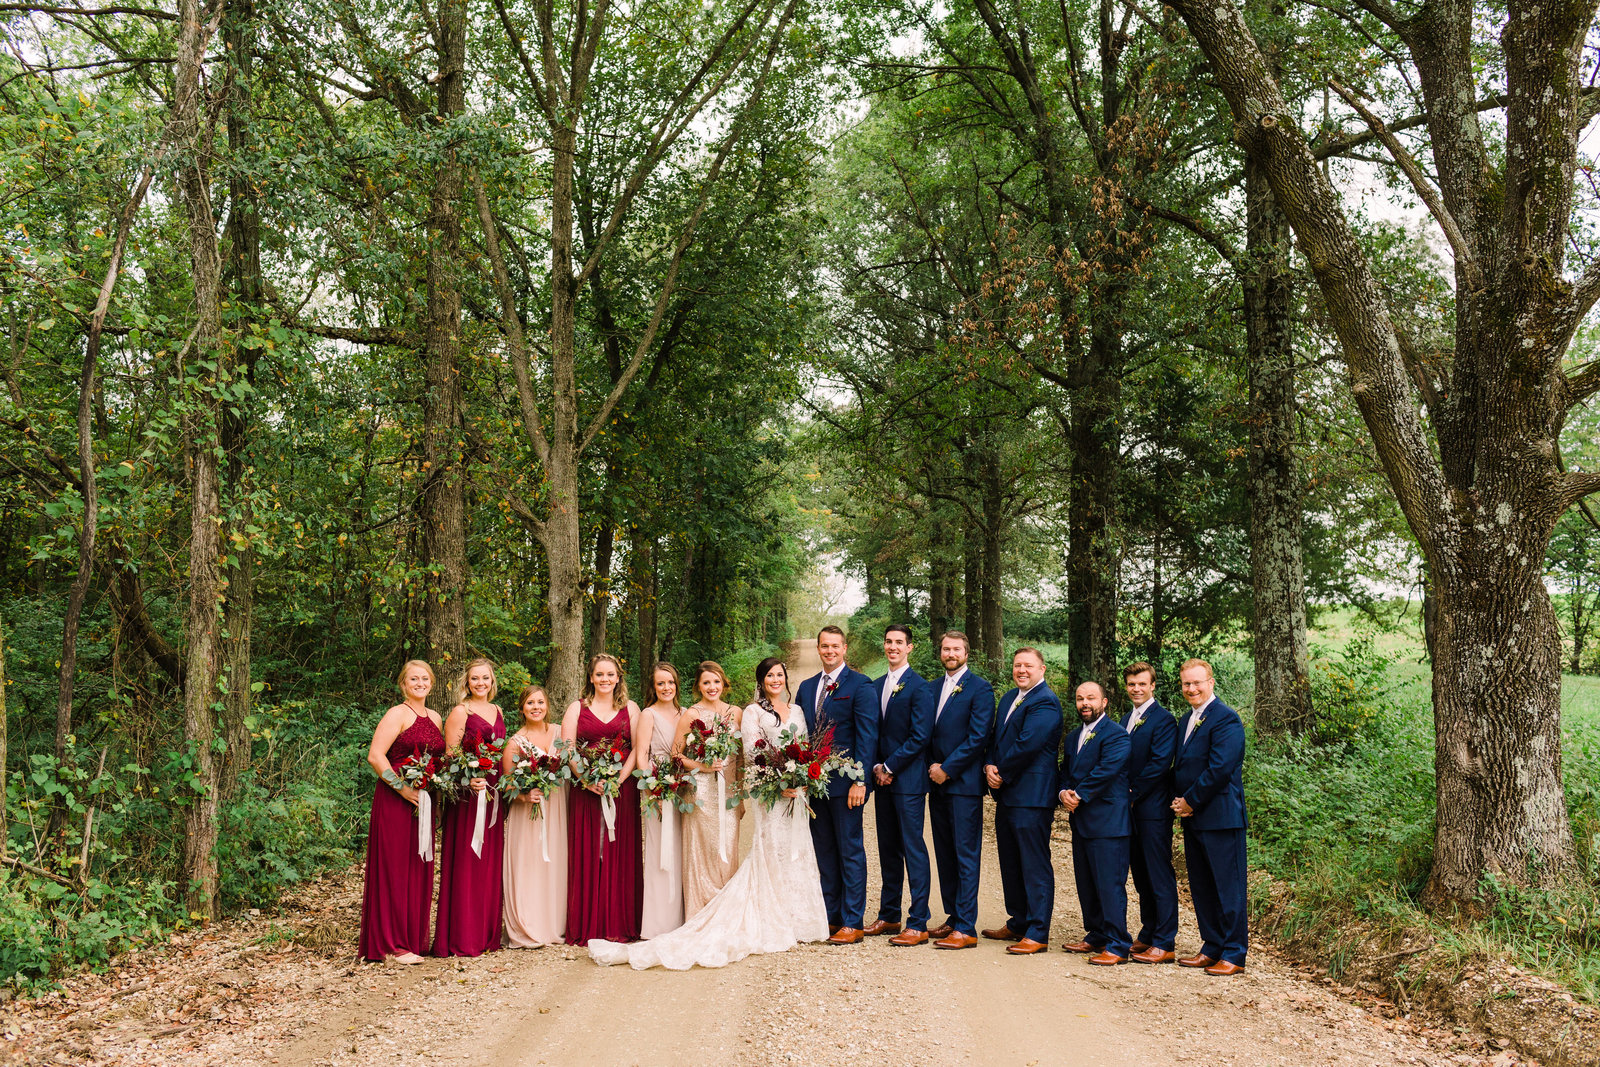 Wedding party portrait from Rustic yet elegant wedding at Three Barn Farm with pops of burgundy and navy by Jackelynn Noel Photography